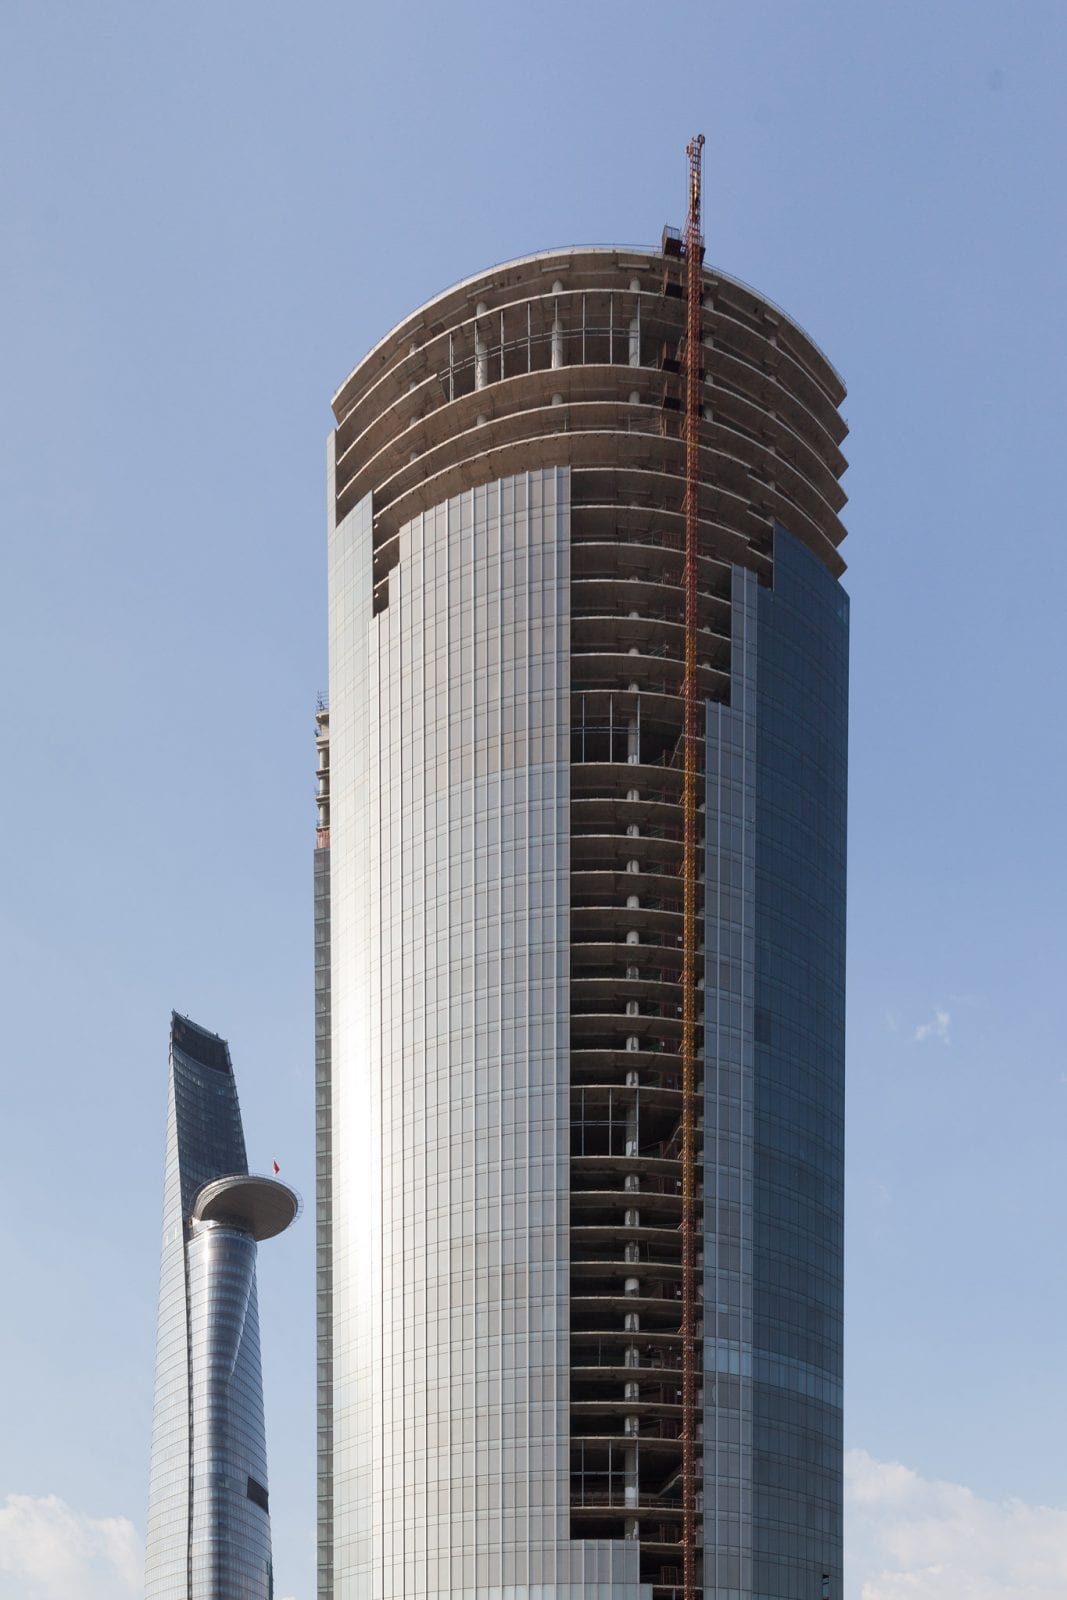 image of the Saigon One Tower in Vietnam